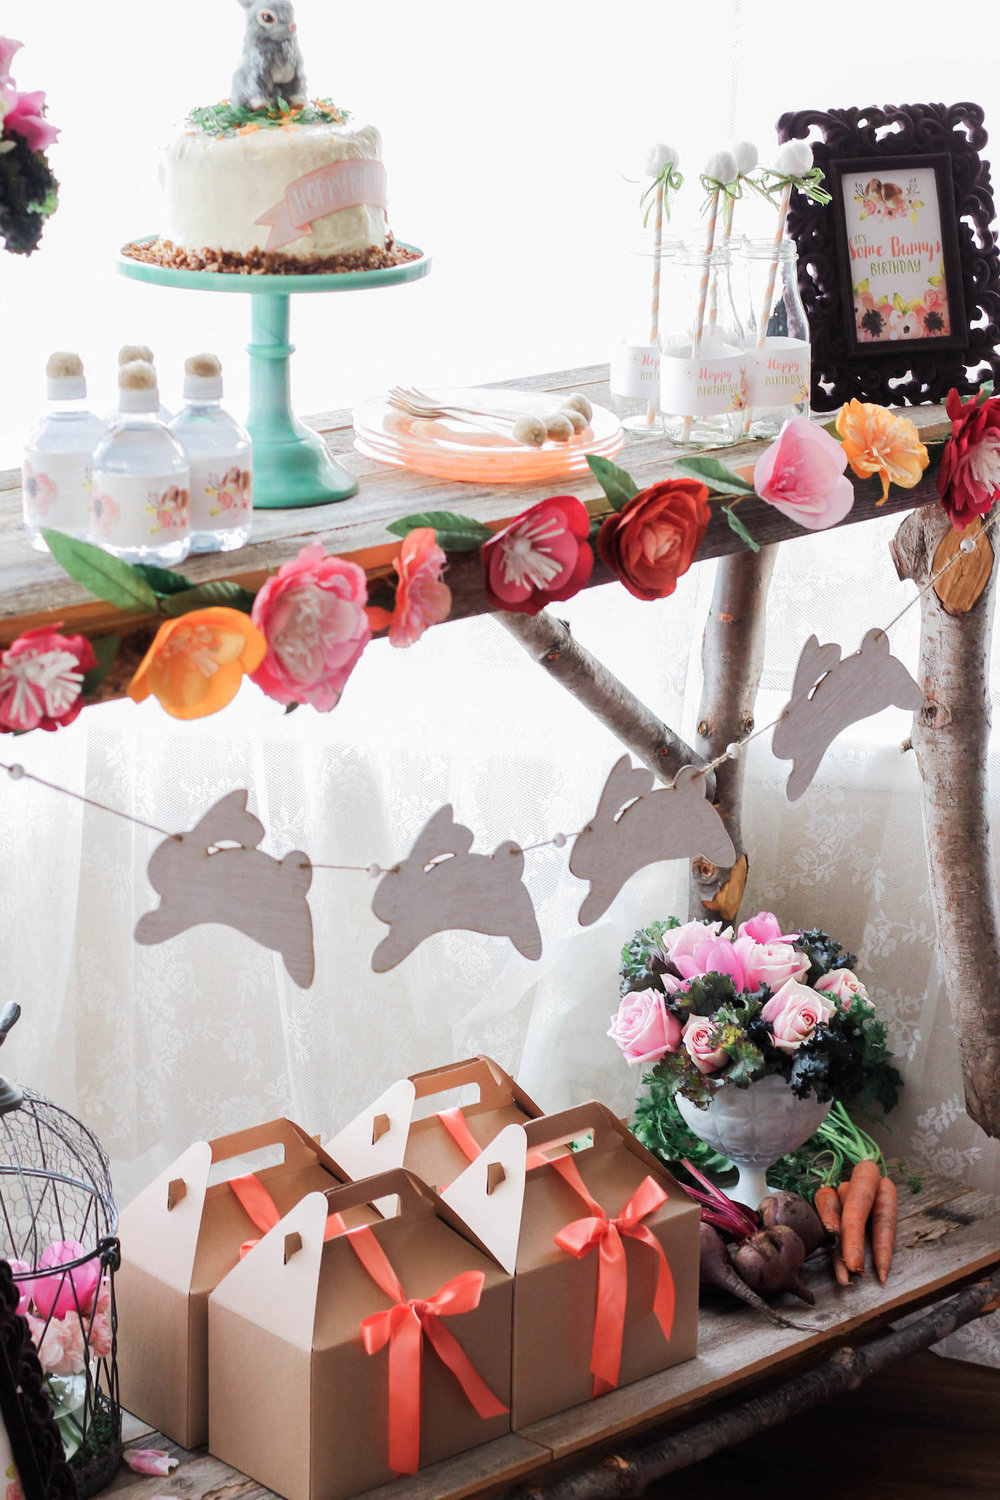 The prettiest display for a Some Bunny Spring Birthday Party - using real vegetables, wooden bunnies for a garland, paper flowers along the table edge . . . click to see more on www.GiggleHearts.com